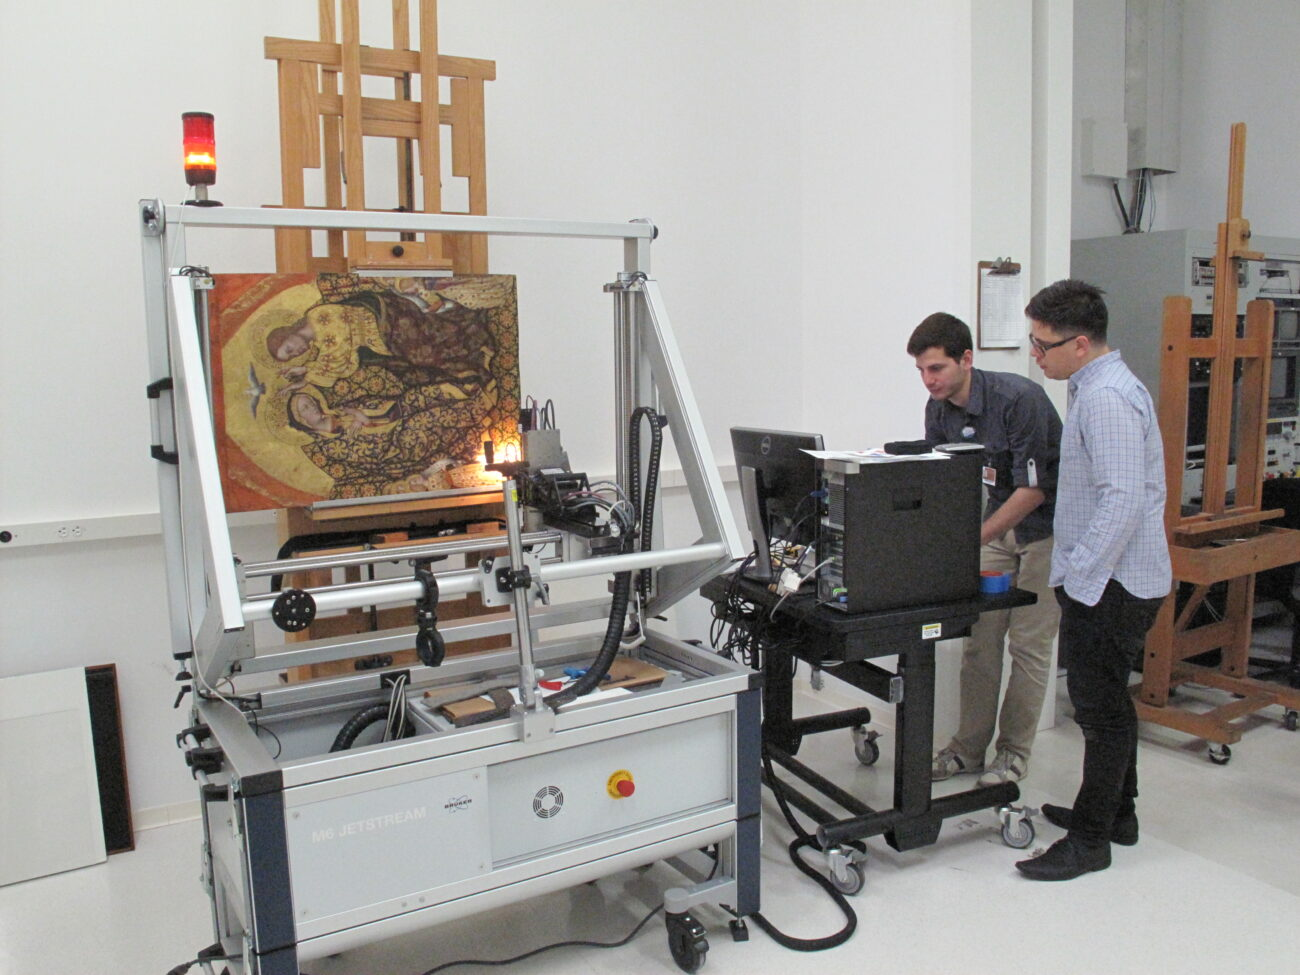 Researchers at the lab look at a painting